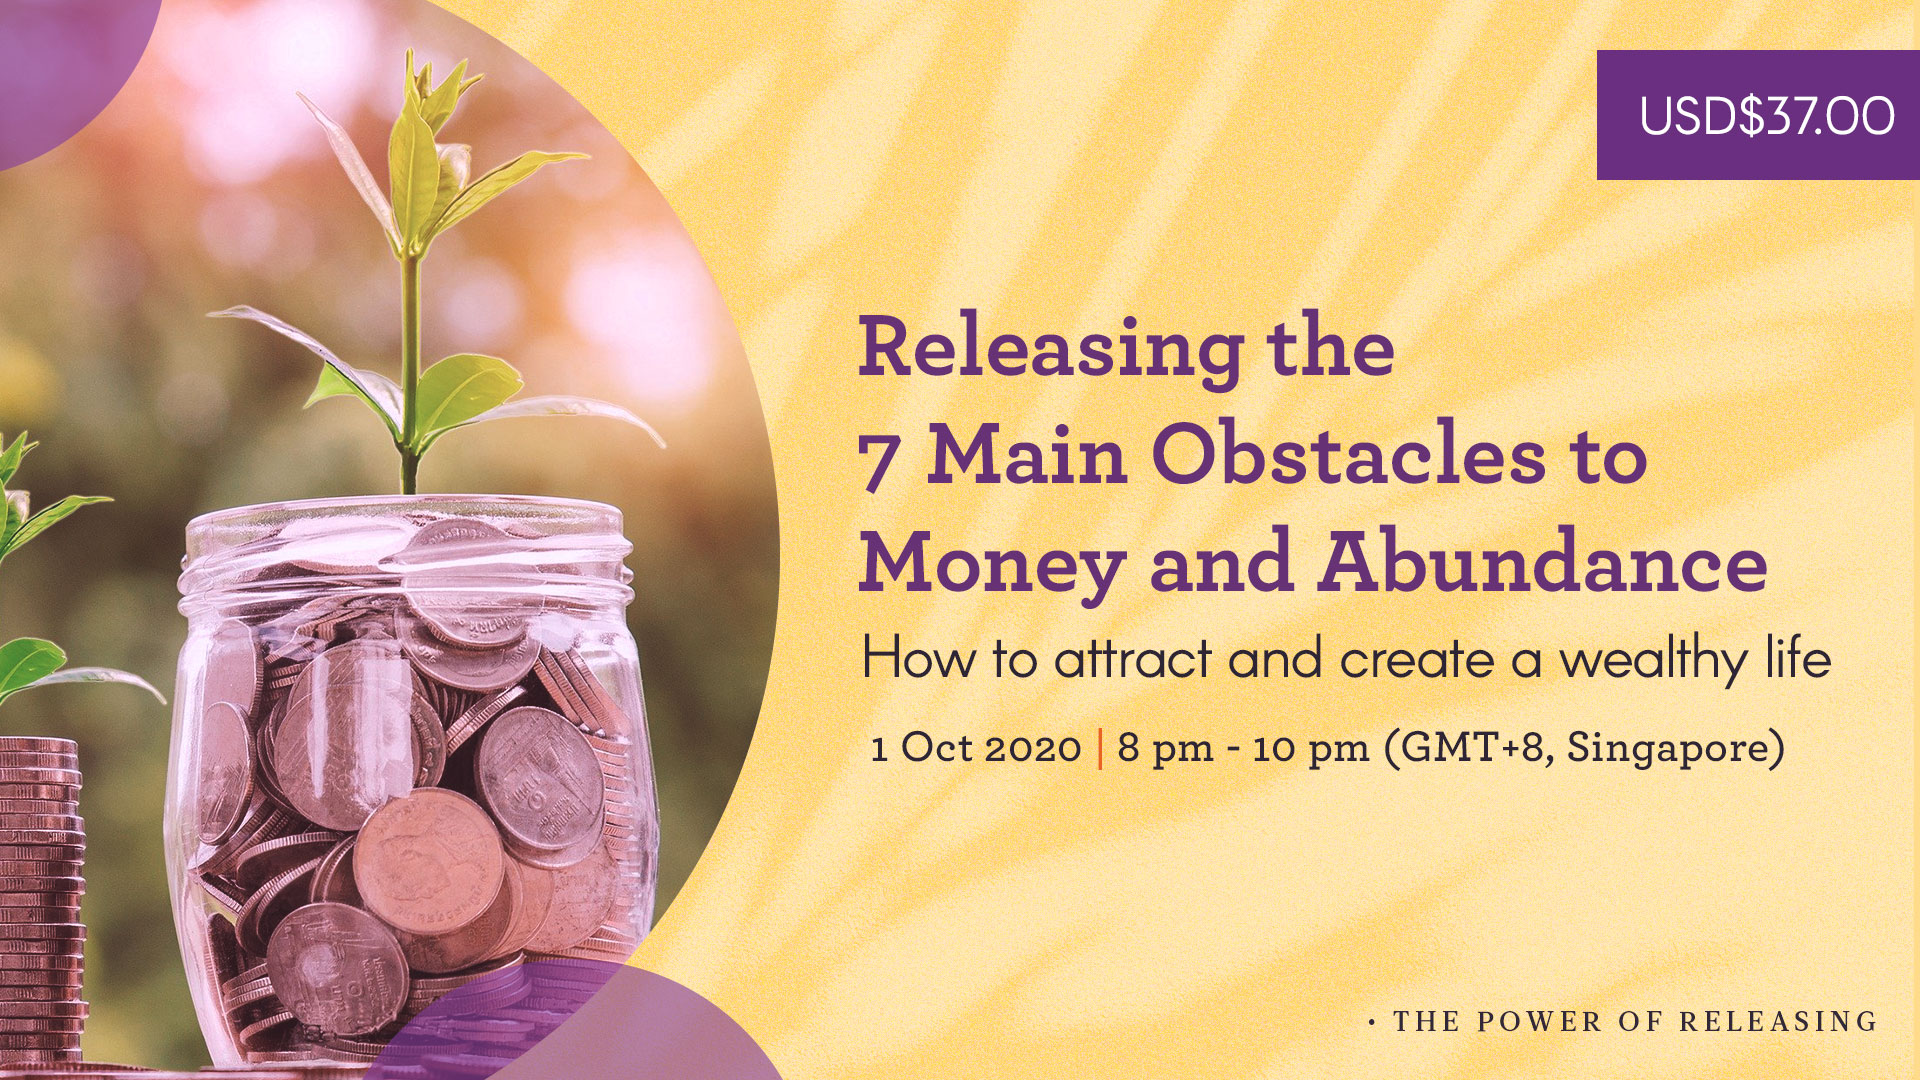 Releasing the 7 Main Obstacles to Money and Abundance - How to attract and create a wealthy life